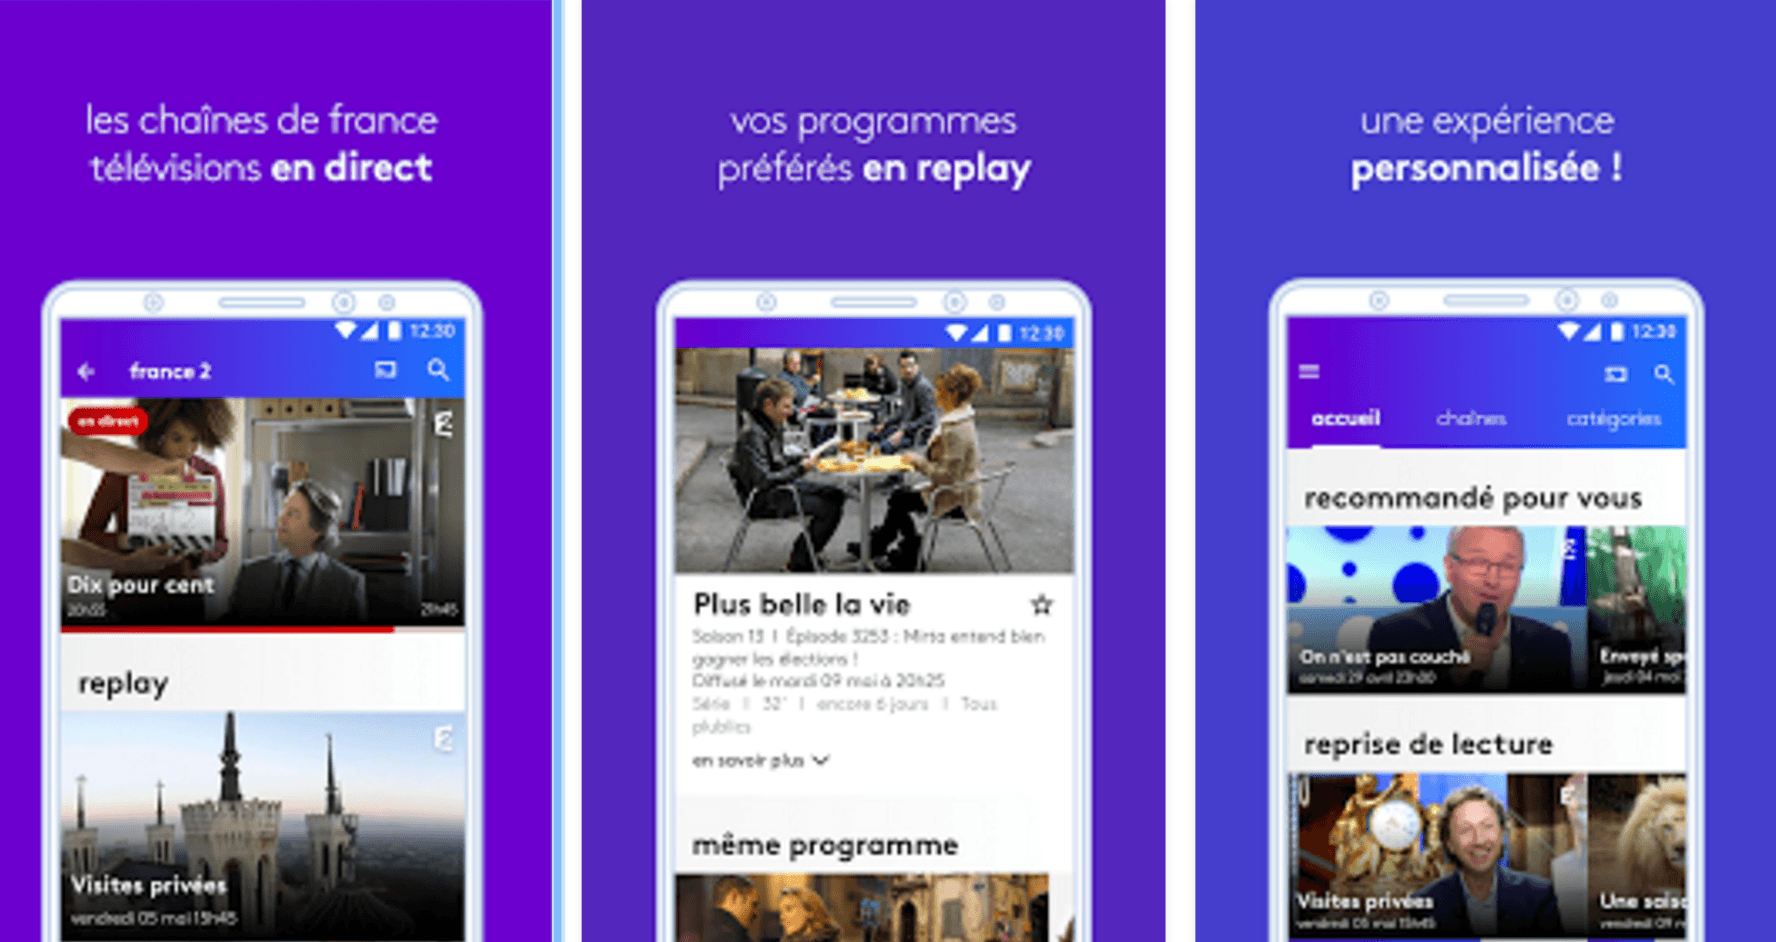 France 3 Tv Pluzz Replay Voici France.tv, Le Service De Replay Moderne Qui Remplace